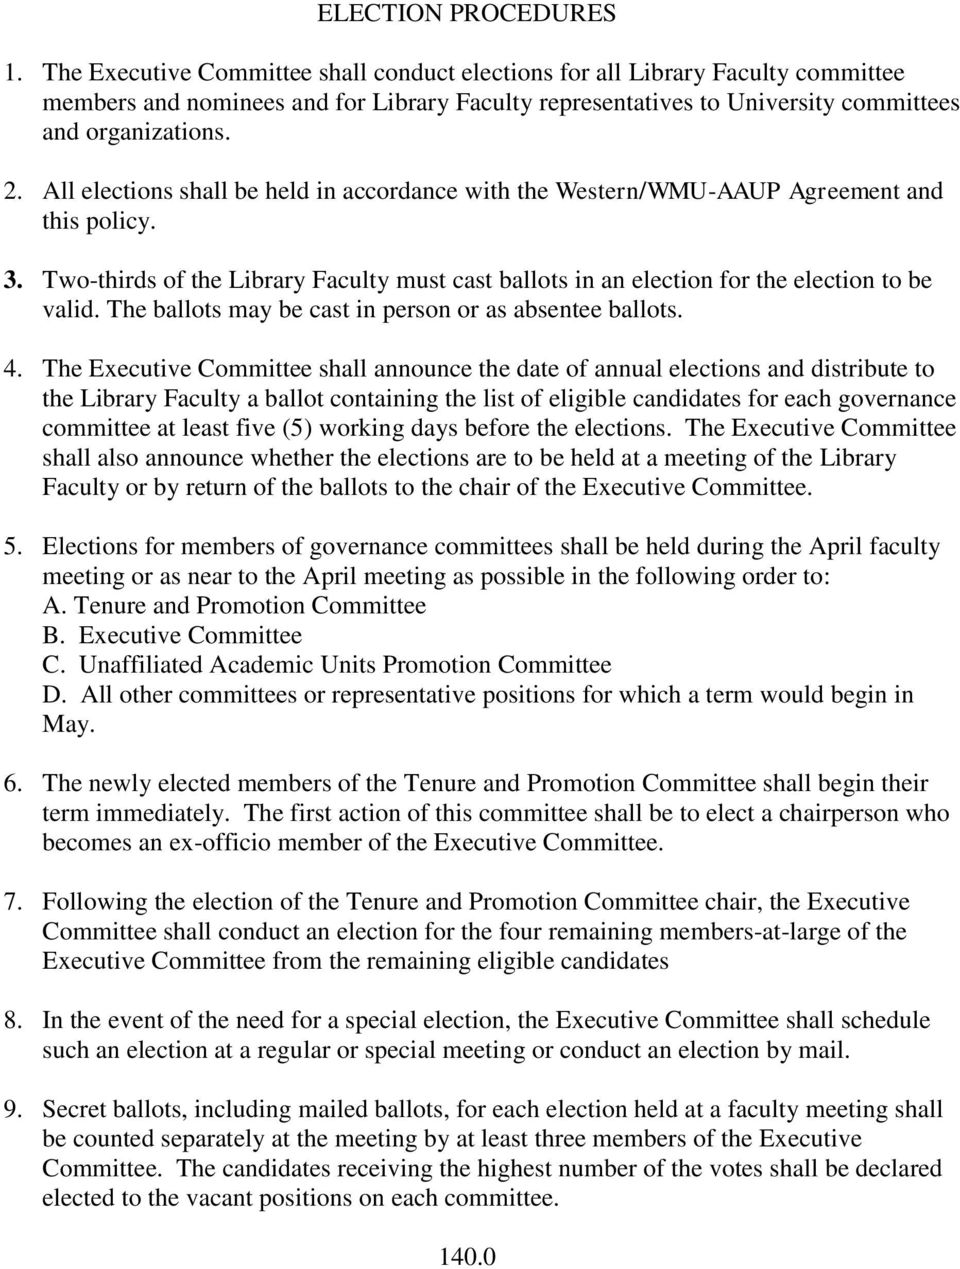 All elections shall be held in accordance with the Western/WMU-AAUP Agreement and this policy. 3. Two-thirds of the Library Faculty must cast ballots in an election for the election to be valid.